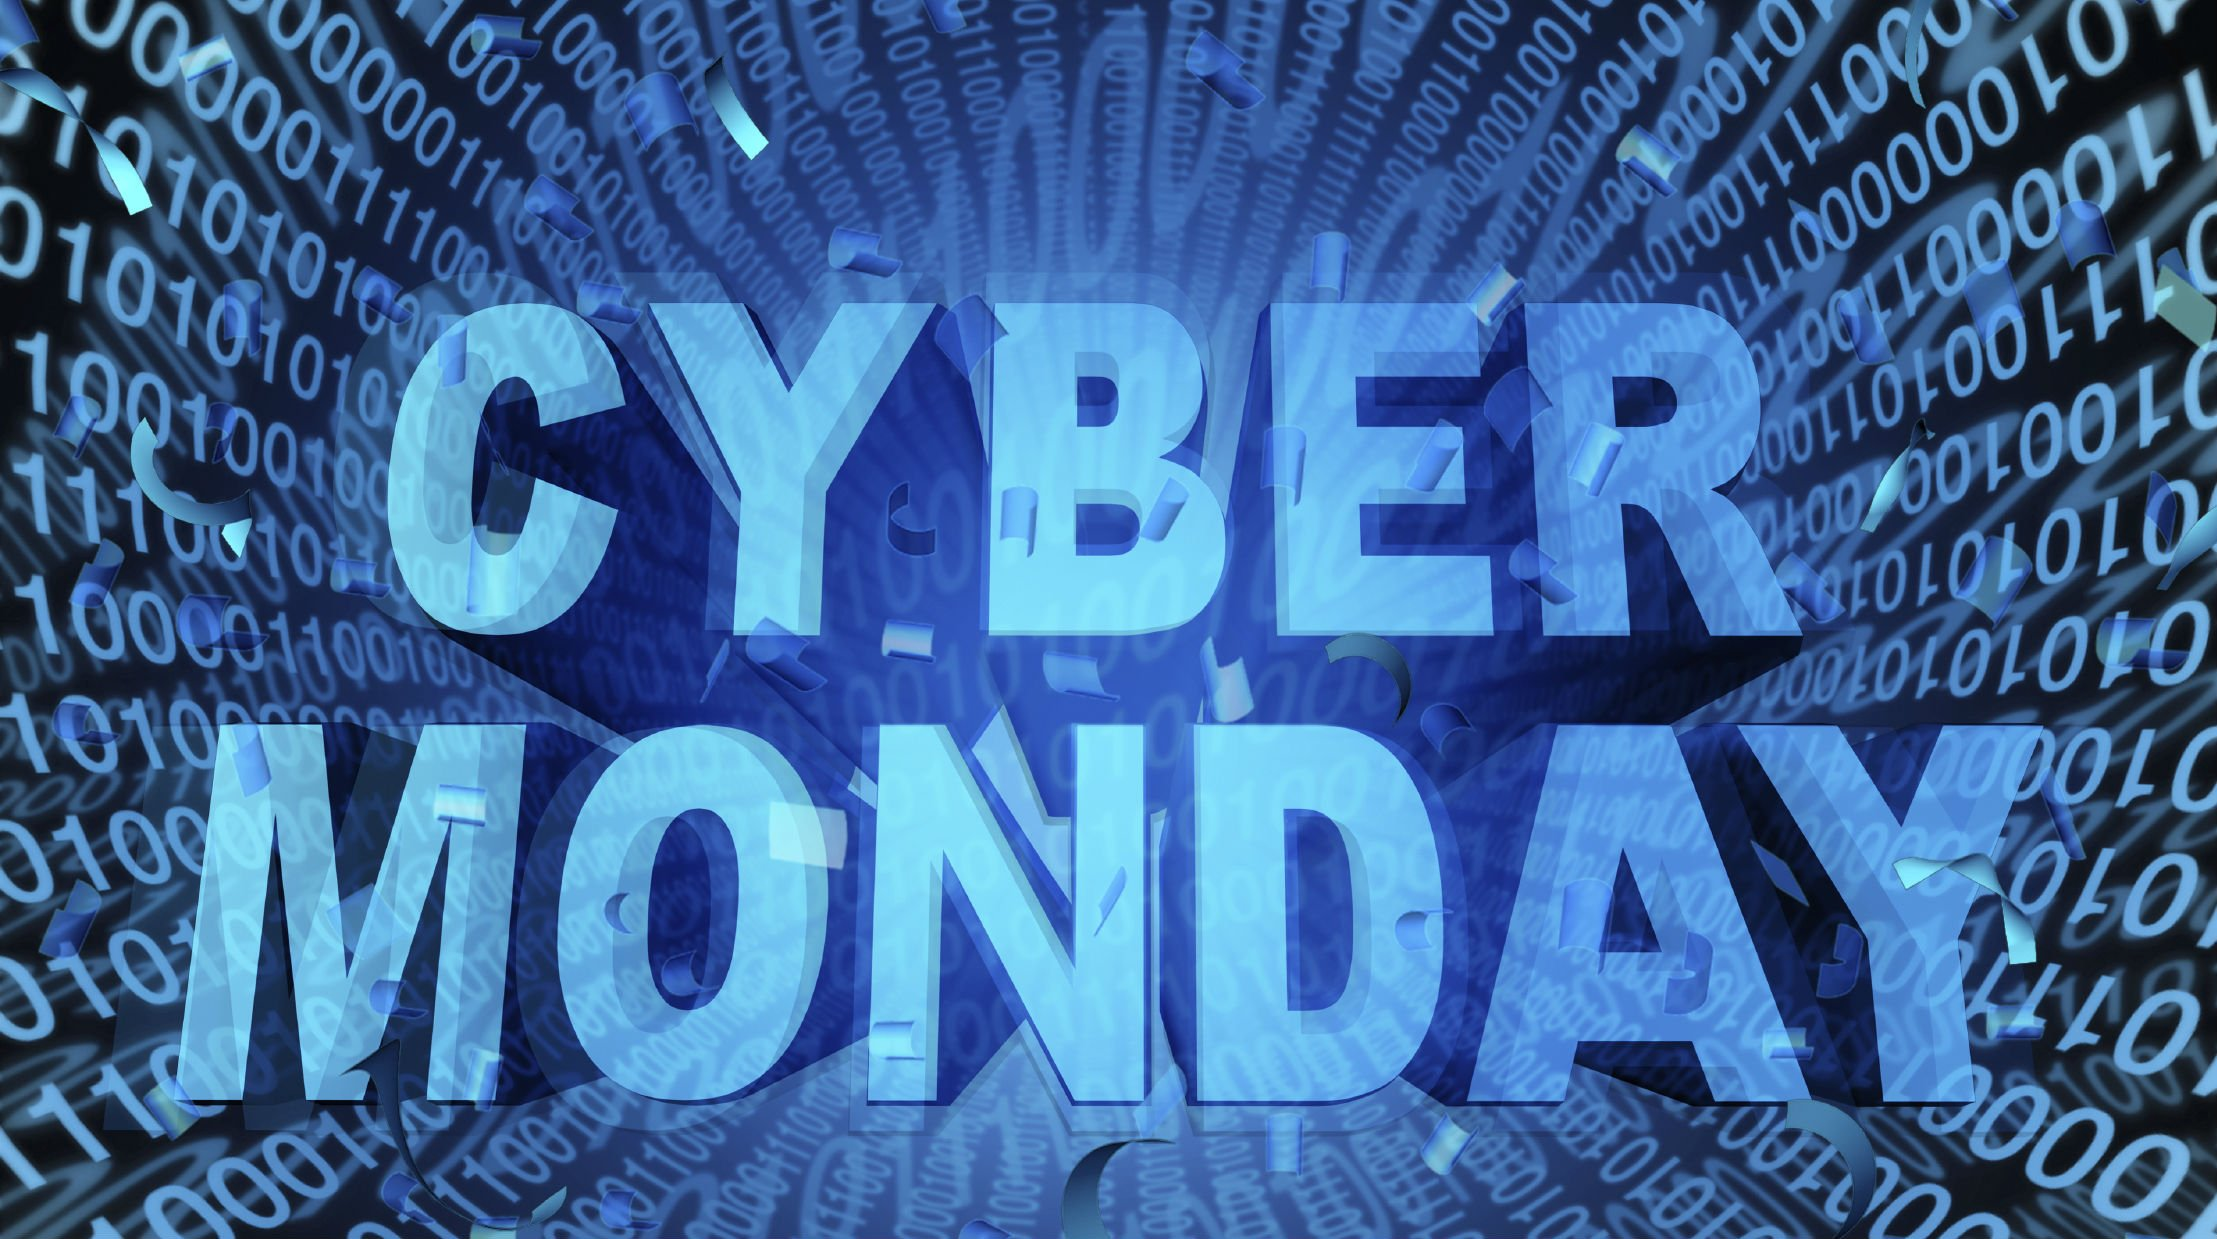 Is your brand ready? How to take advantage of Cyber Monday